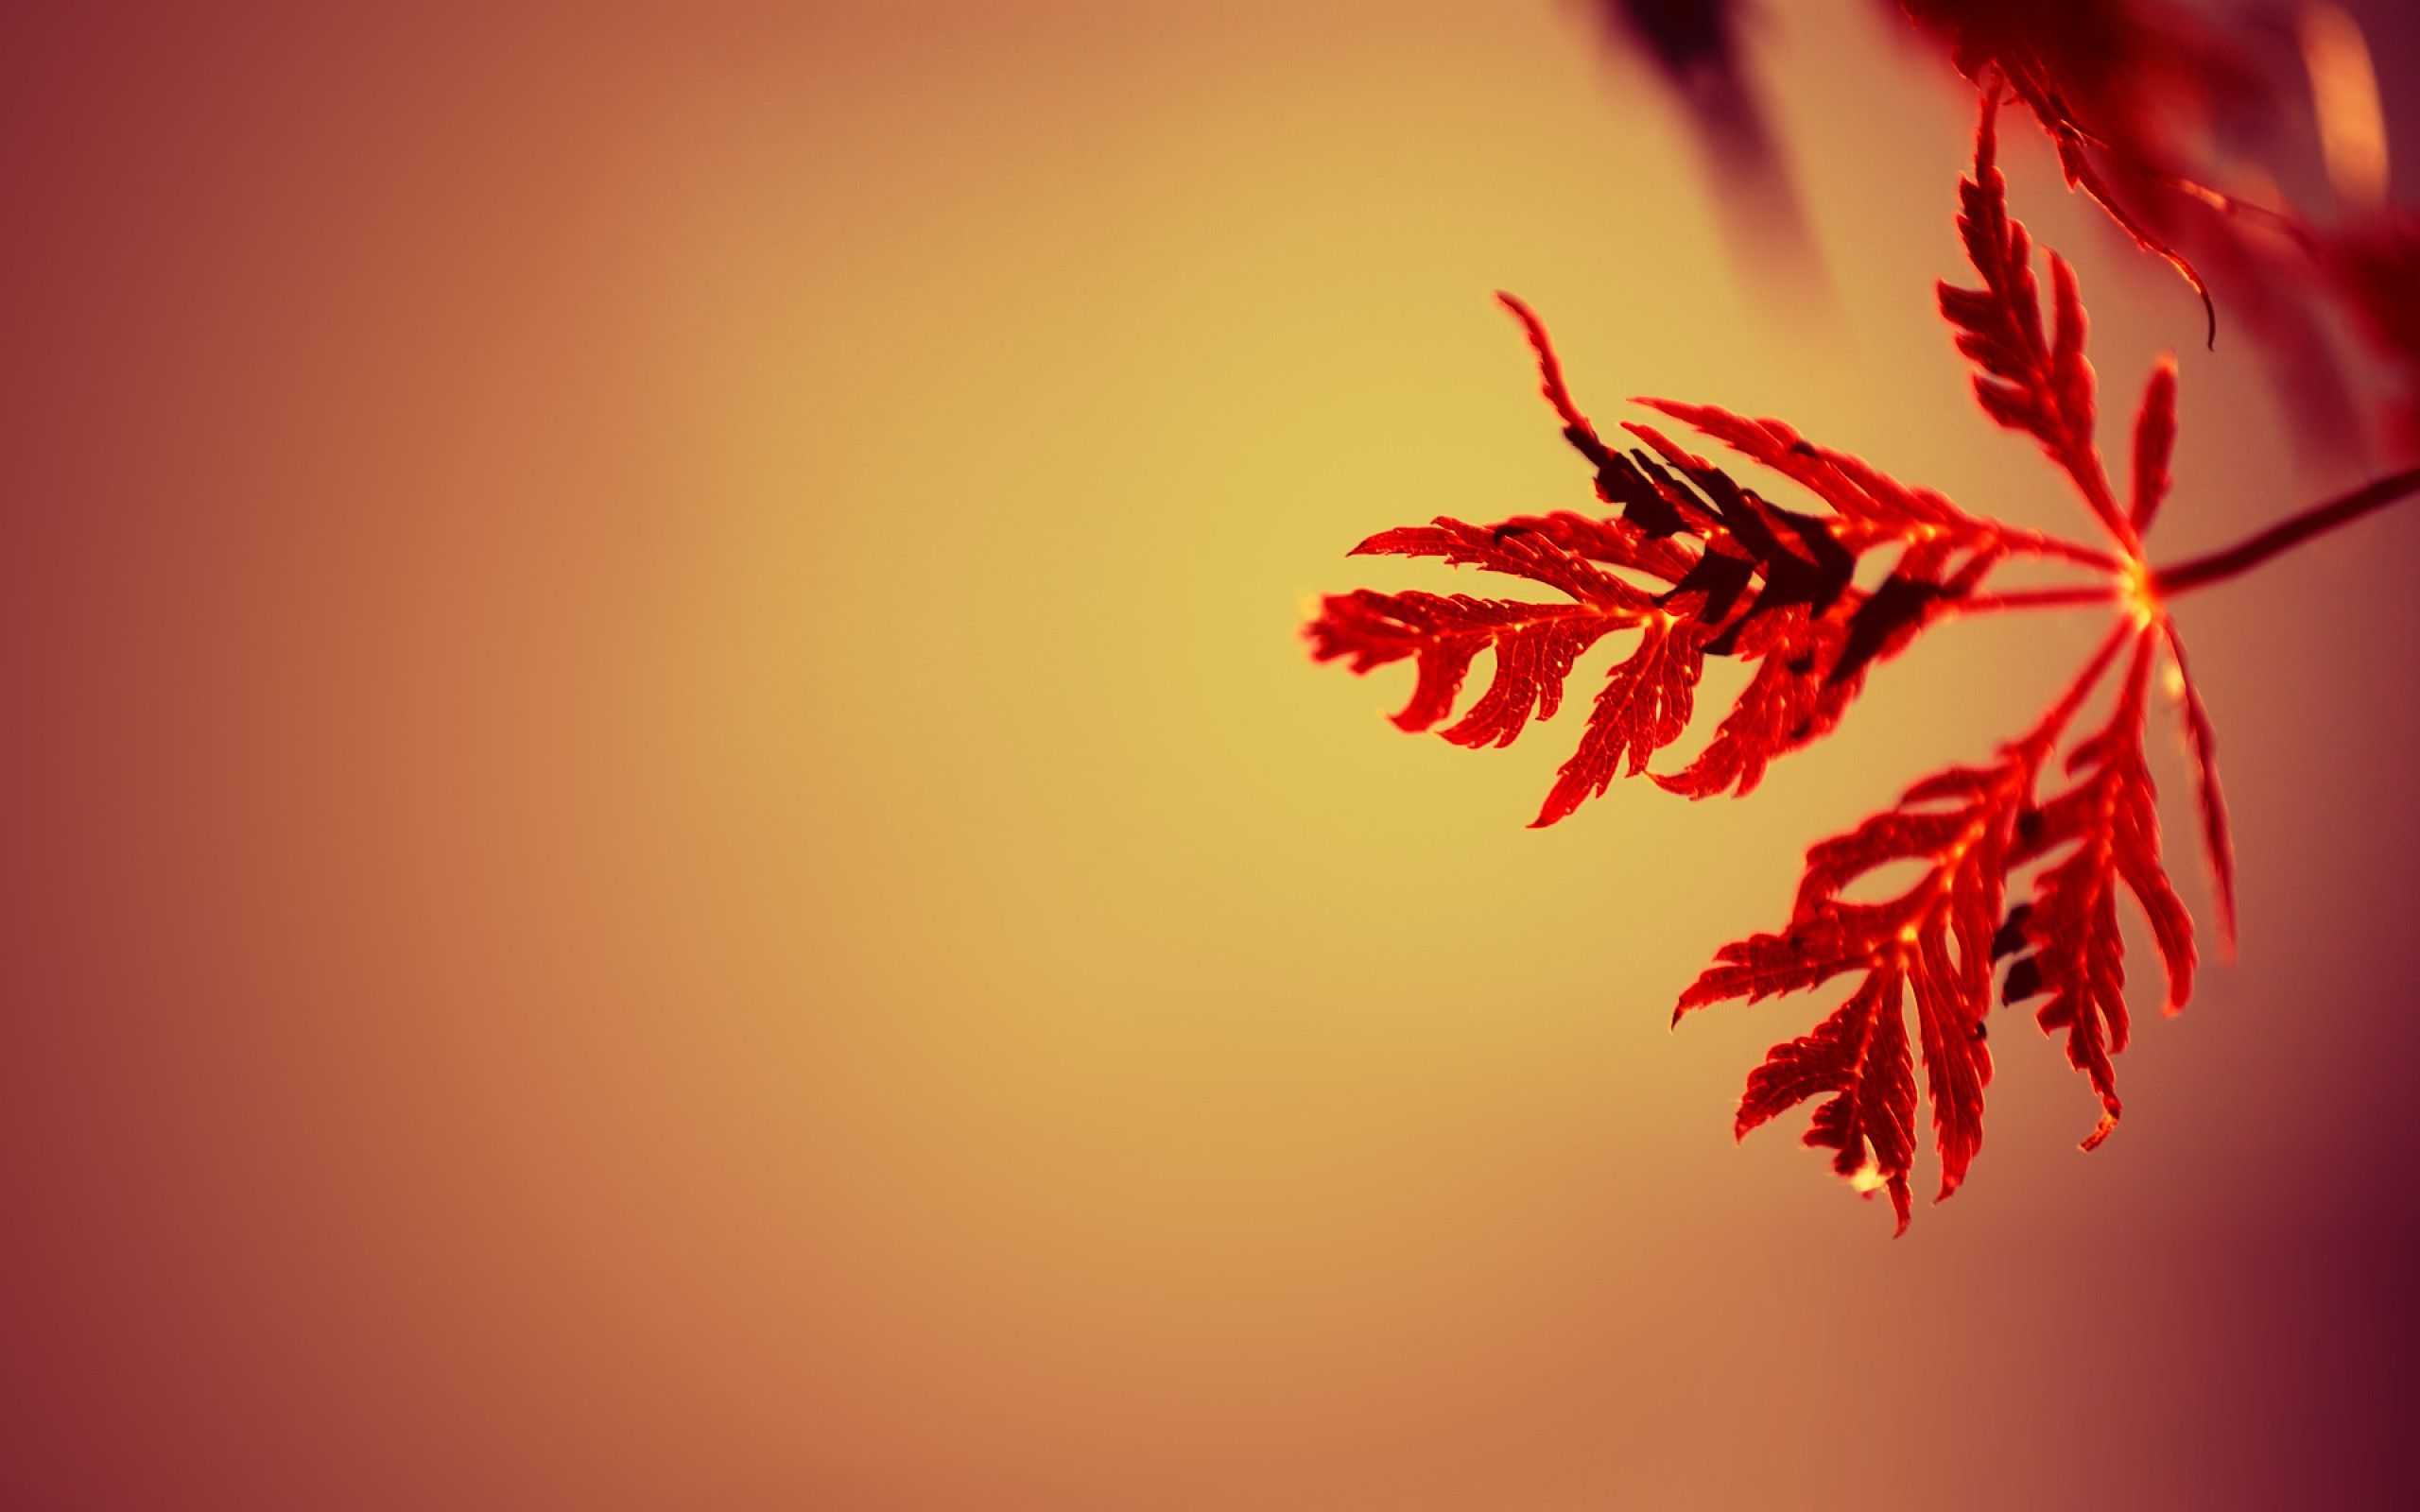 Beautiful Red Leaves wallpaper | 2560x1600 | #29393